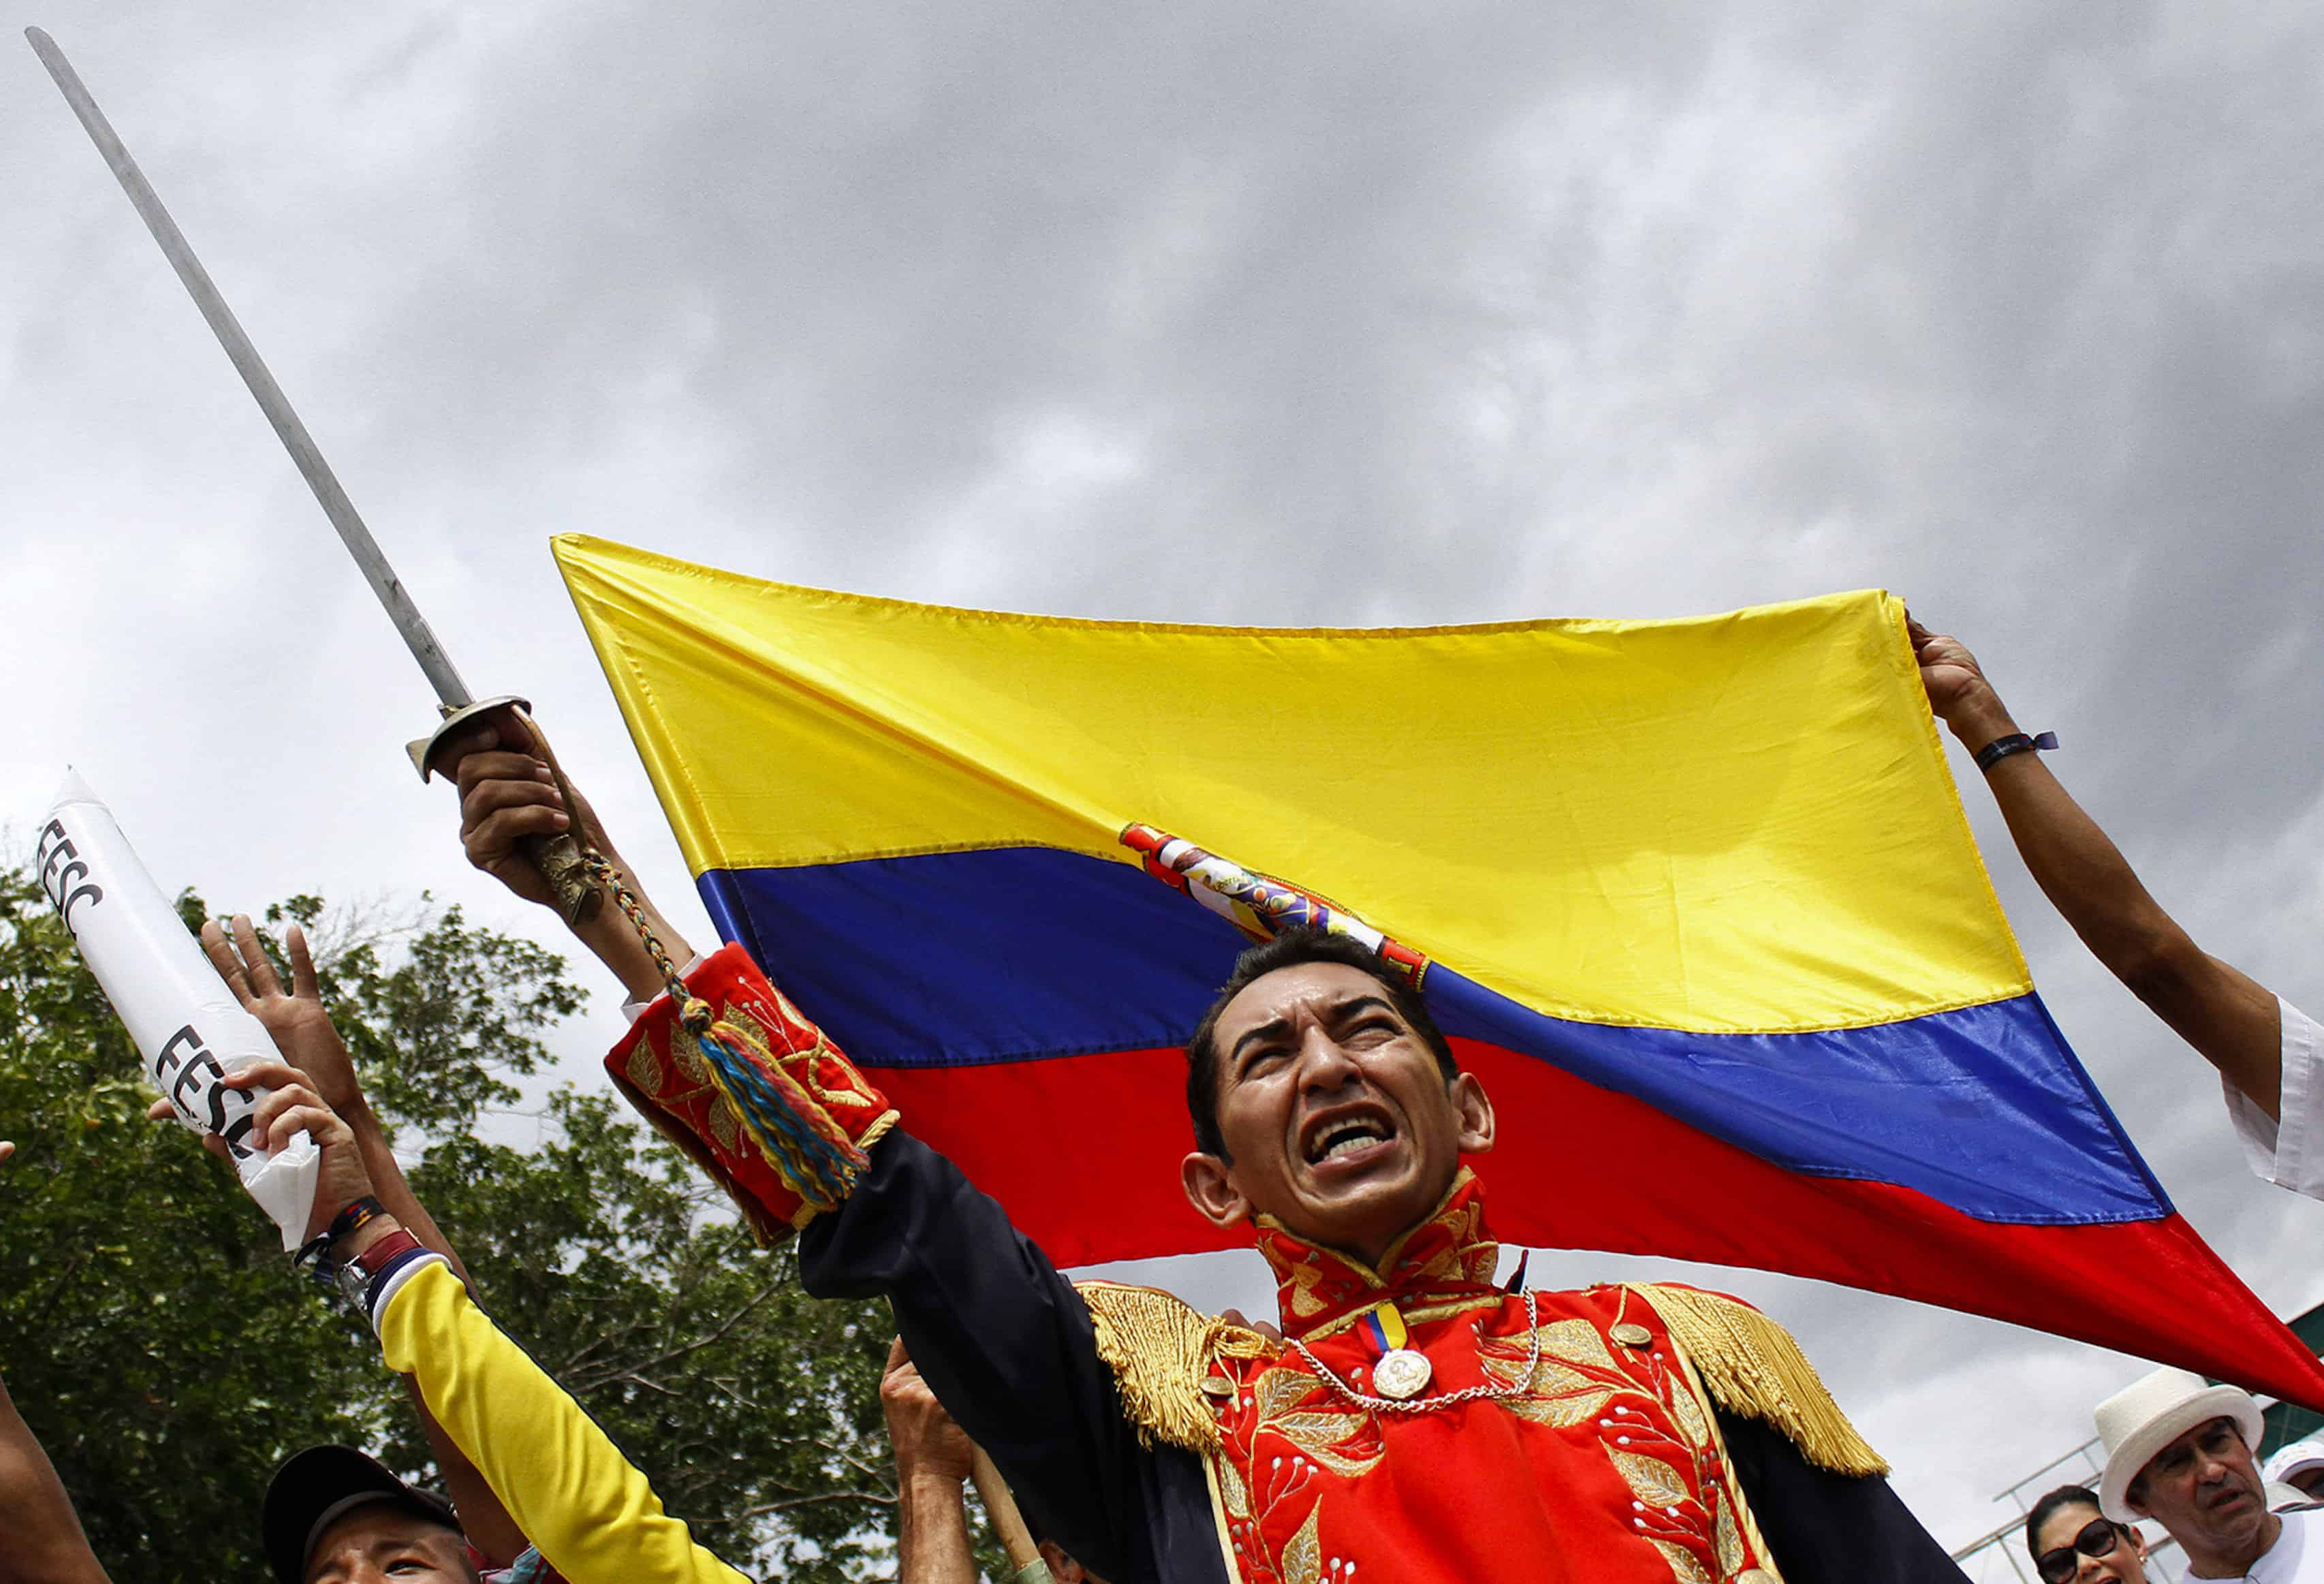 A man dressed as Latin American hero Simón Bolívar marches against Venezuelan President Nicolás Maduro in Cucuta, Colombia, on Sept. 6, 2015.